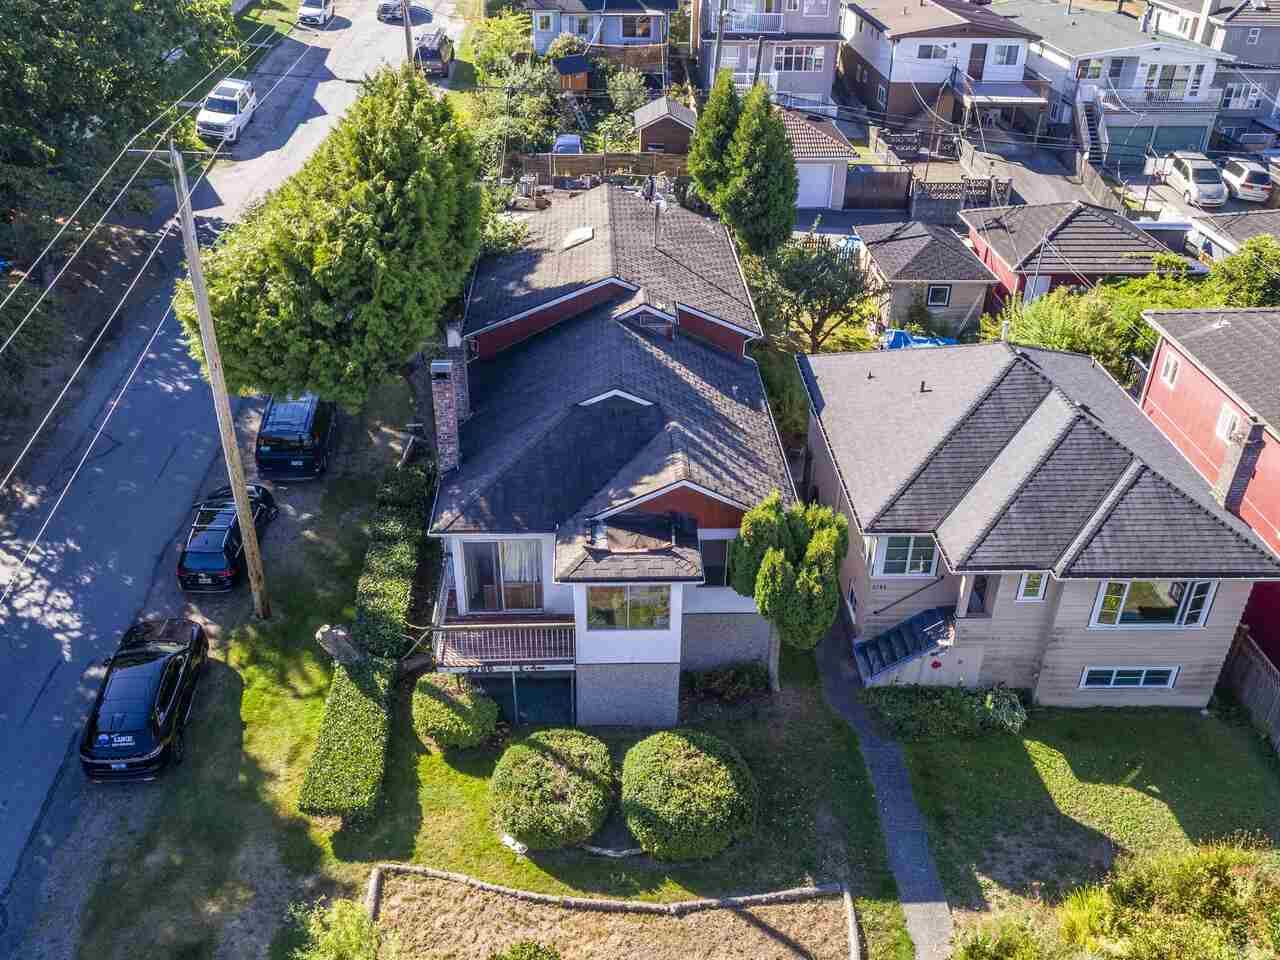 """Photo 3: Photos: 2796 E 4TH Avenue in Vancouver: Renfrew VE House for sale in """"Renfrew Heights"""" (Vancouver East)  : MLS®# R2496647"""